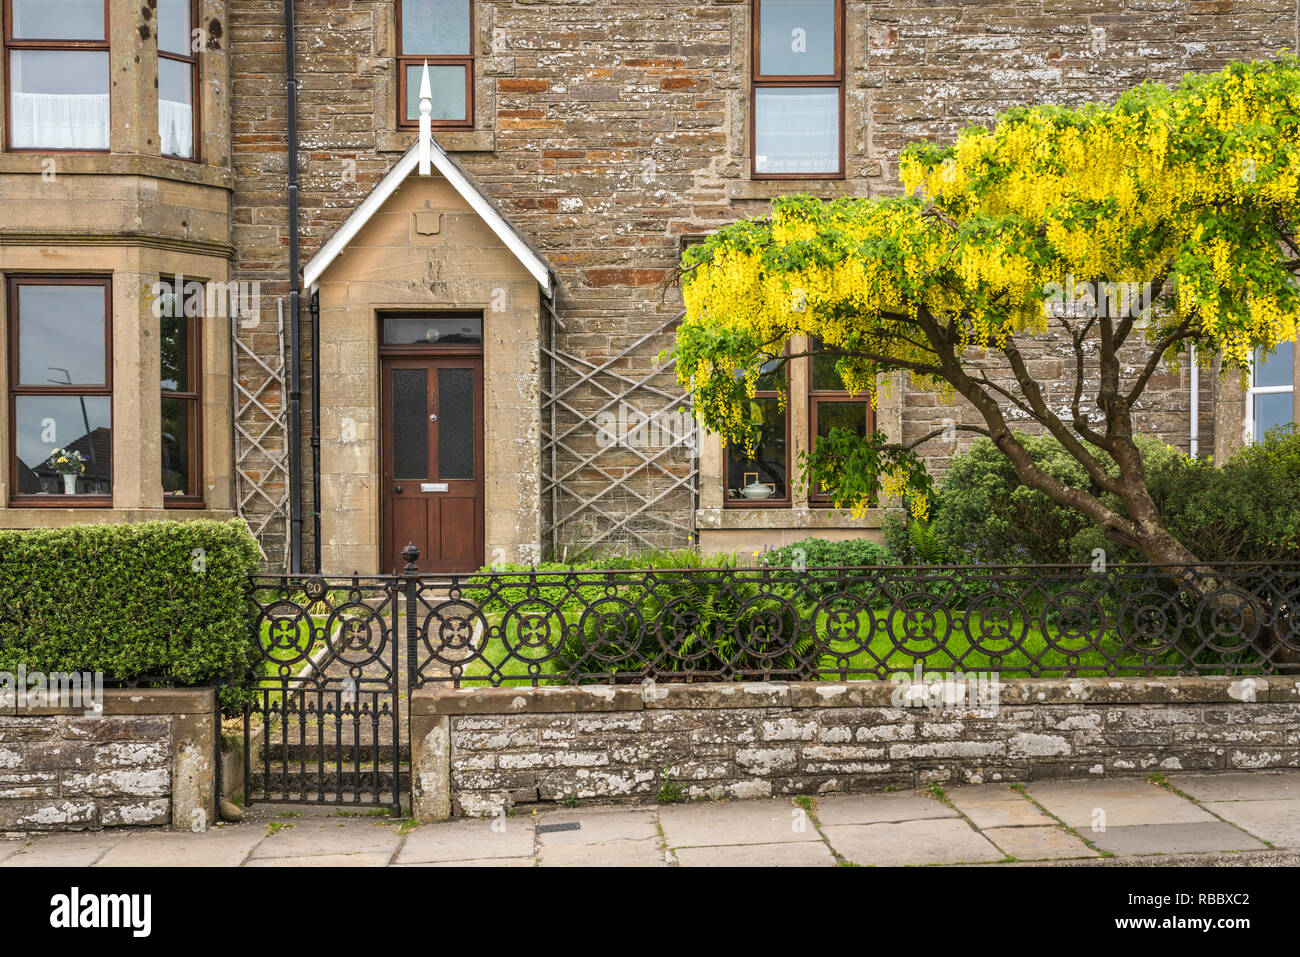 A stone residential building in Kirkwall, Orkney Isles, Scotland, United Kingdom, Europe. - Stock Image